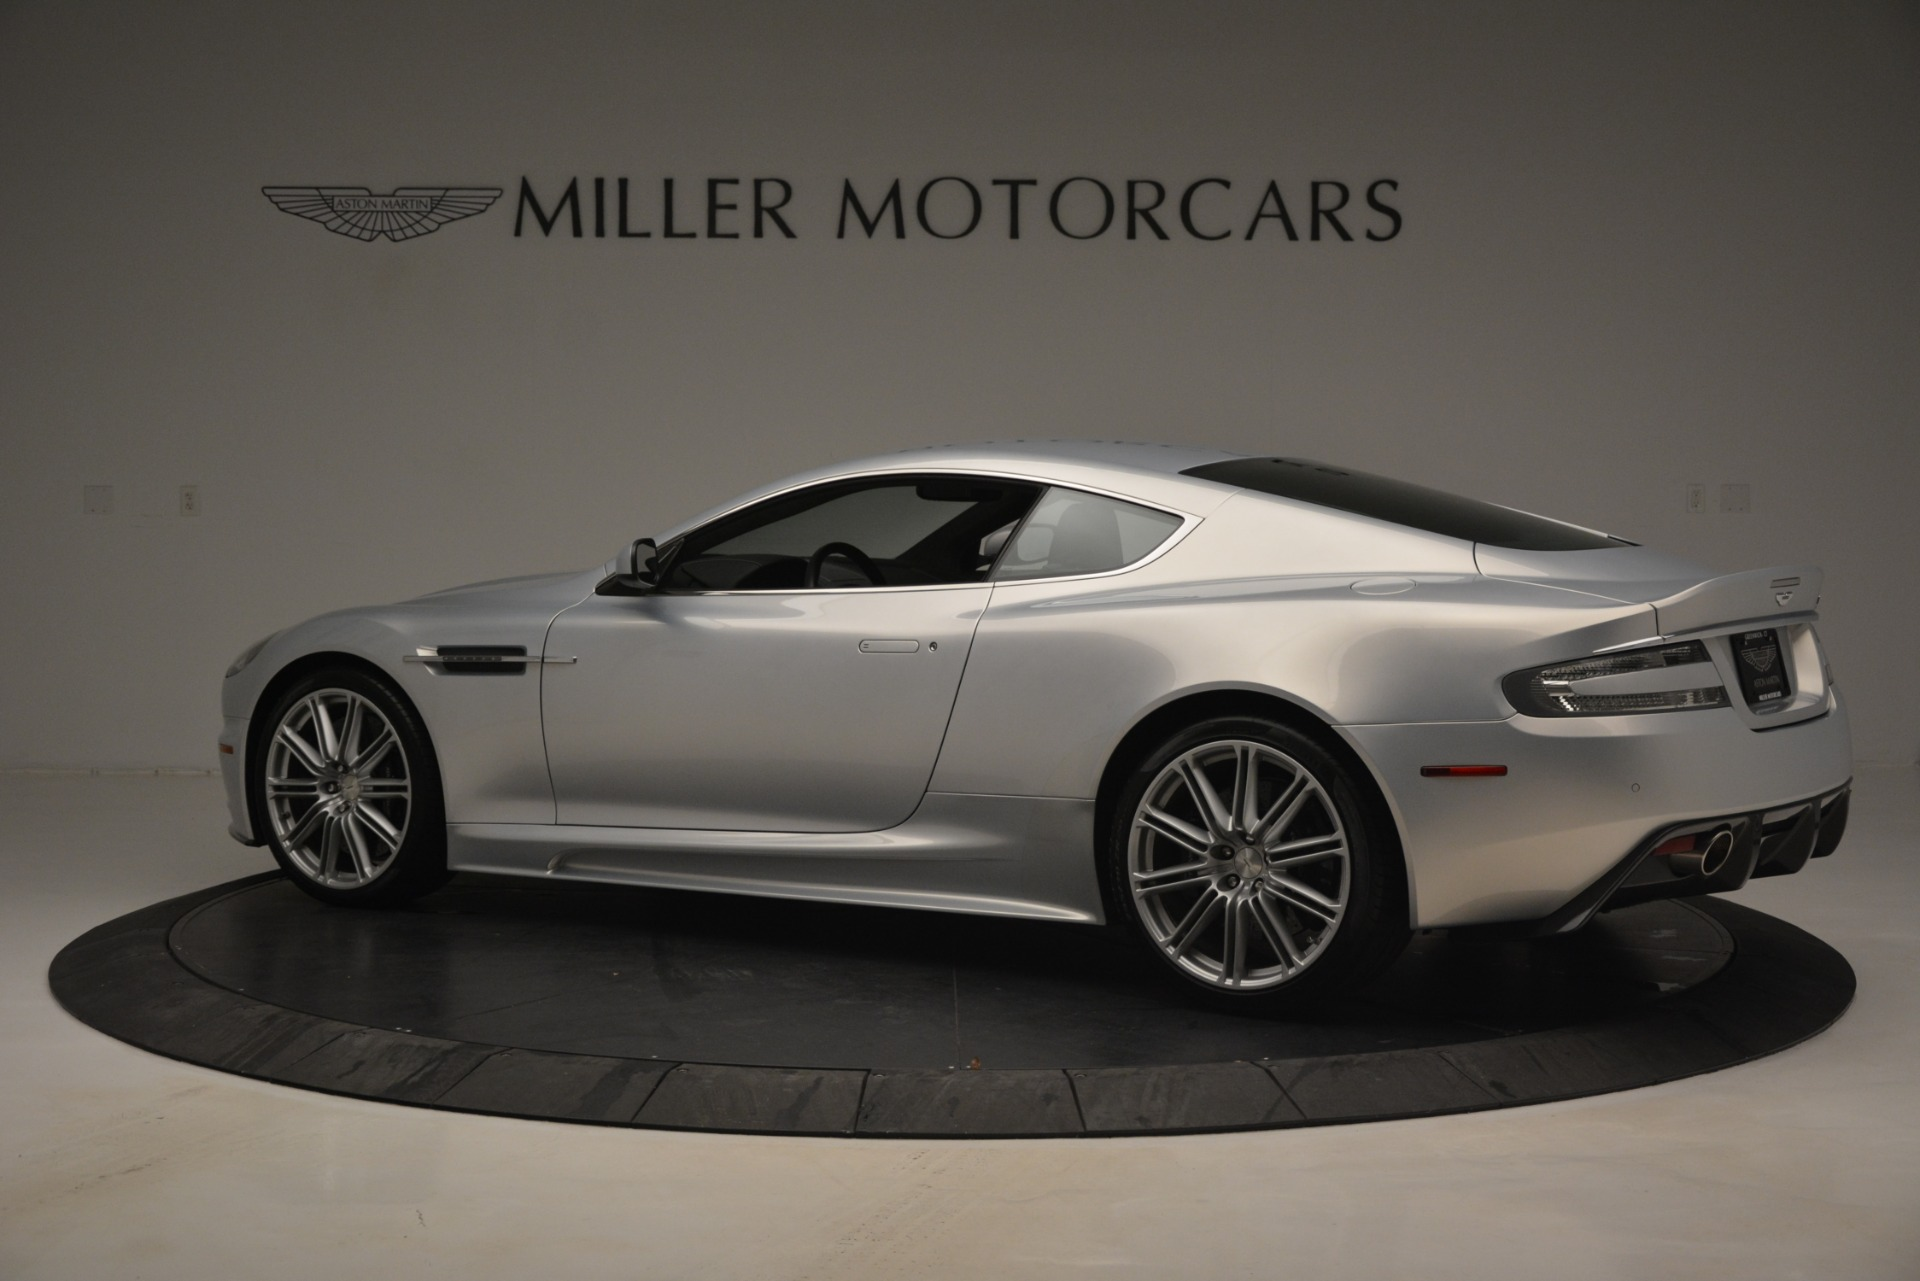 Used 2009 Aston Martin DBS Coupe For Sale In Westport, CT 3033_p4